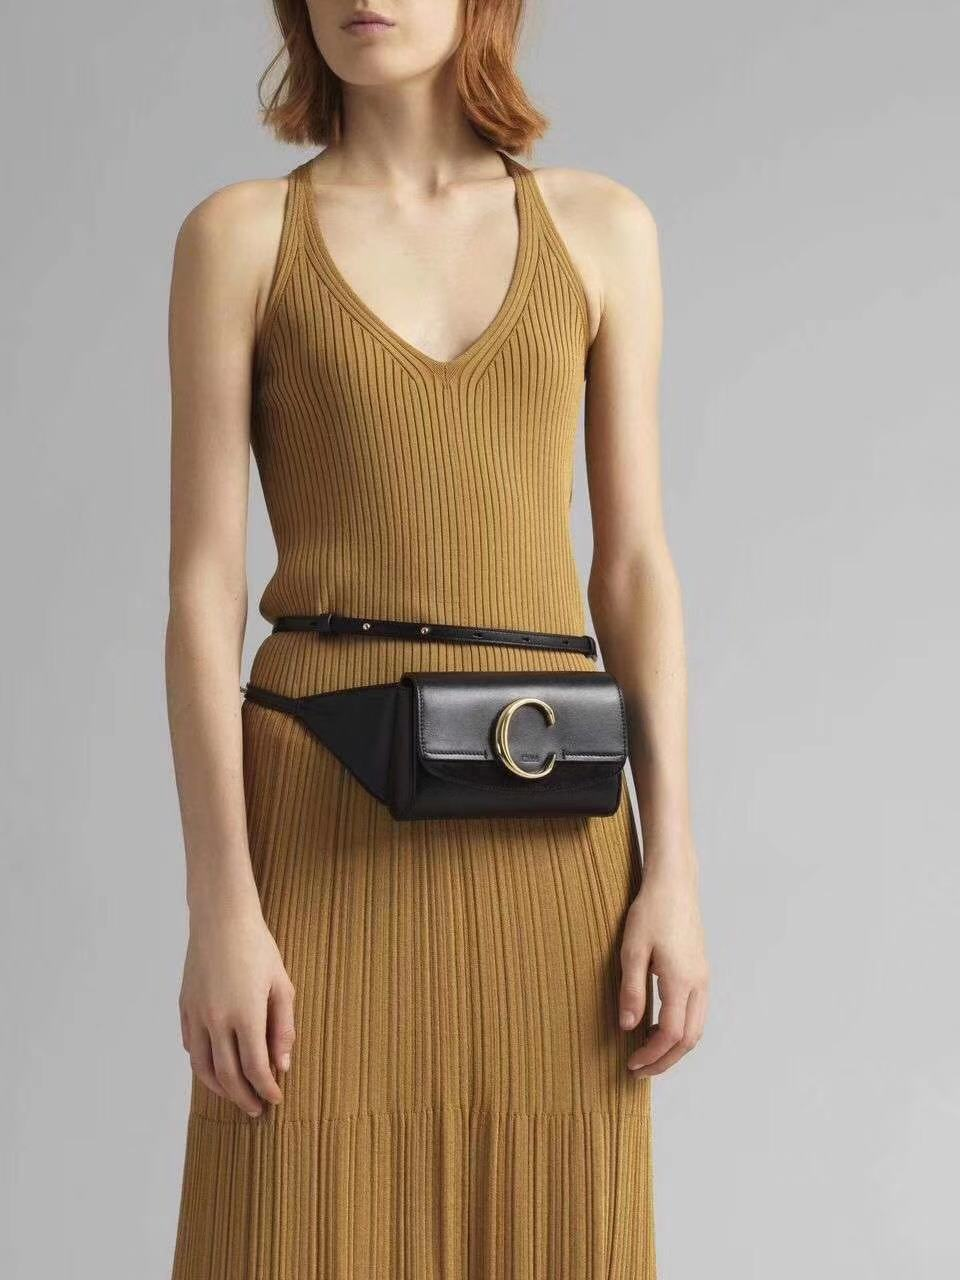 Chloe Original Leather Belt Bag 3S036 black